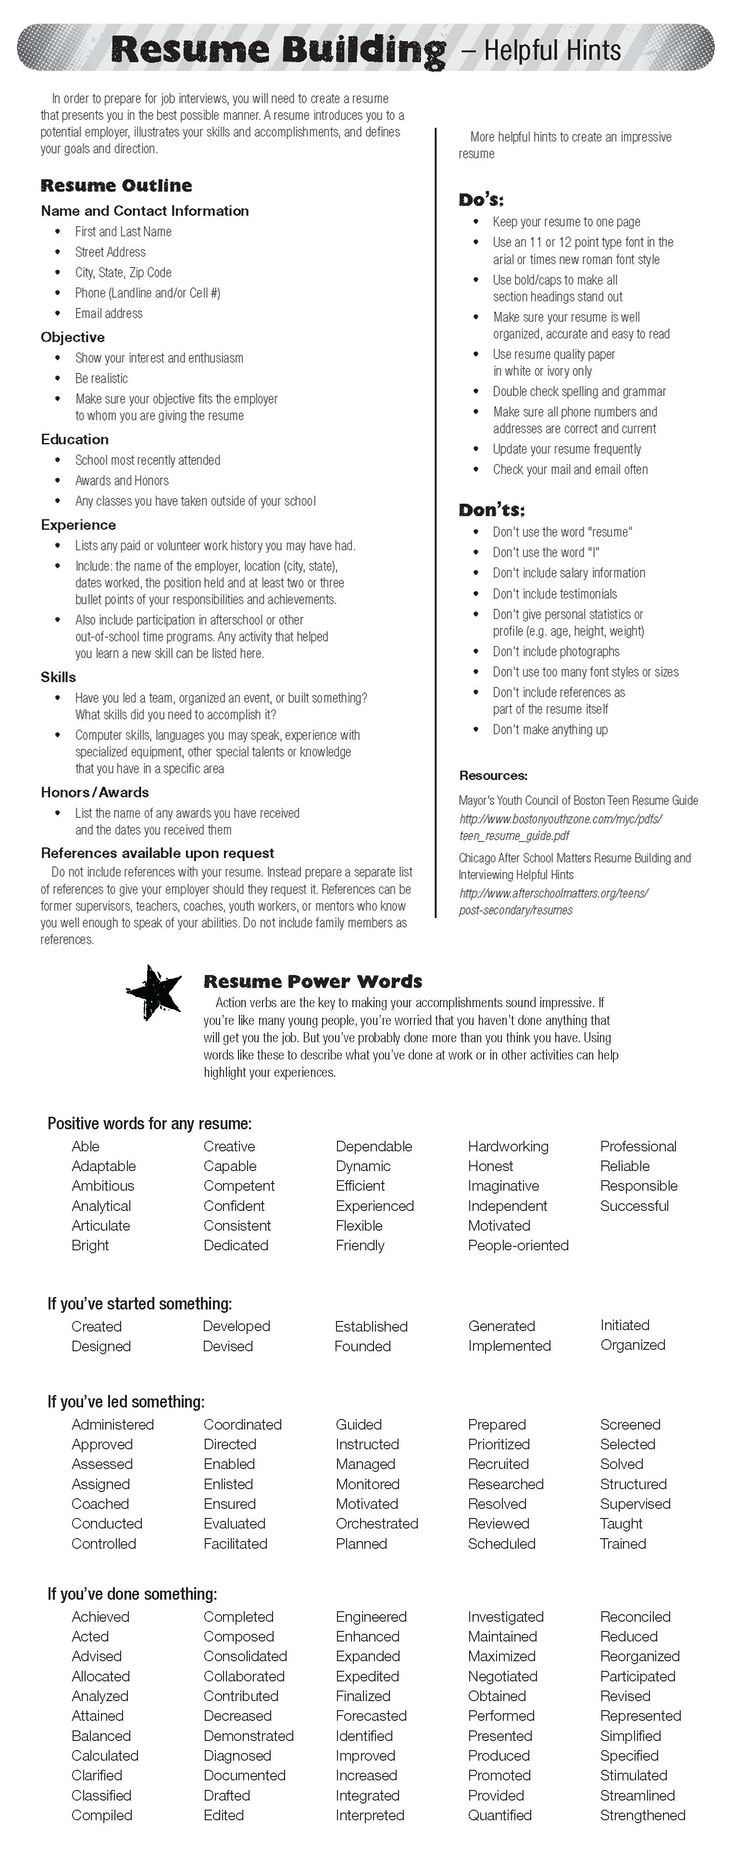 Opposenewapstandardsus  Gorgeous  Ideas About Resume On Pinterest  Cv Format Resume Cv And  With Gorgeous  Ideas About Resume On Pinterest  Cv Format Resume Cv And Resume Templates With Amazing Myperfect Resume Also Programmer Resume In Addition Engineering Resume Templates And General Resume Objective Examples As Well As Mechanical Engineer Resume Additionally Architect Resume From Pinterestcom With Opposenewapstandardsus  Gorgeous  Ideas About Resume On Pinterest  Cv Format Resume Cv And  With Amazing  Ideas About Resume On Pinterest  Cv Format Resume Cv And Resume Templates And Gorgeous Myperfect Resume Also Programmer Resume In Addition Engineering Resume Templates From Pinterestcom